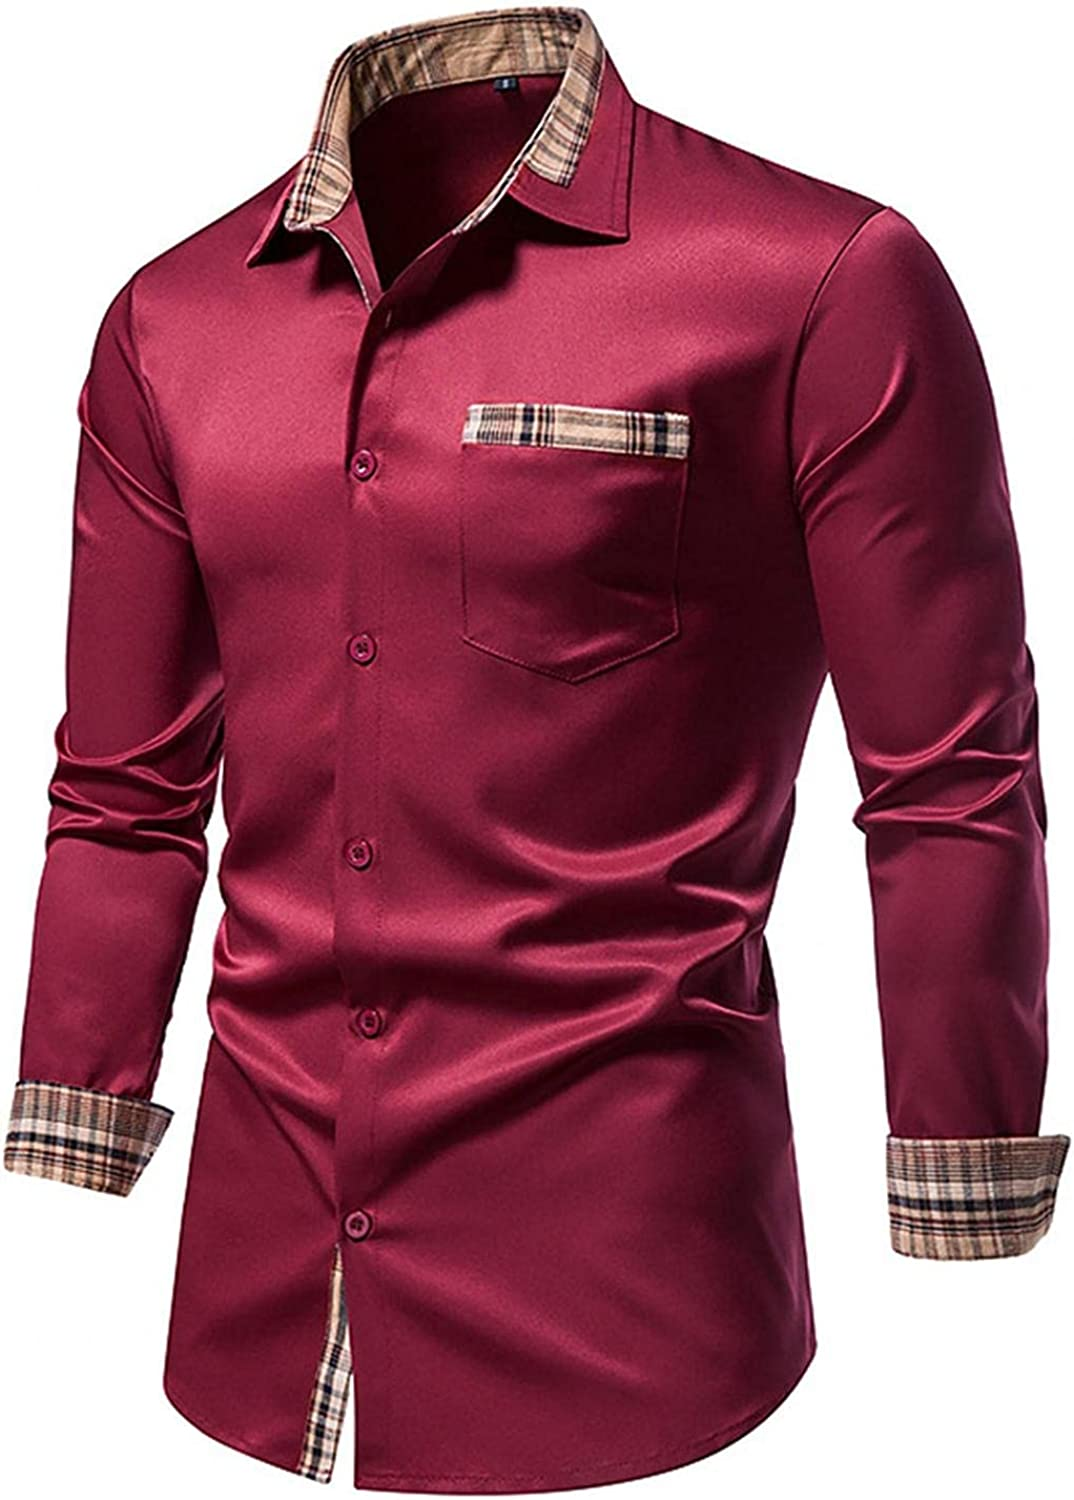 Huangse Men's Business Slim Fit Dress Shirt Long Sleeve Casual Fashion Patchwork Button Down Shirt with Pocket